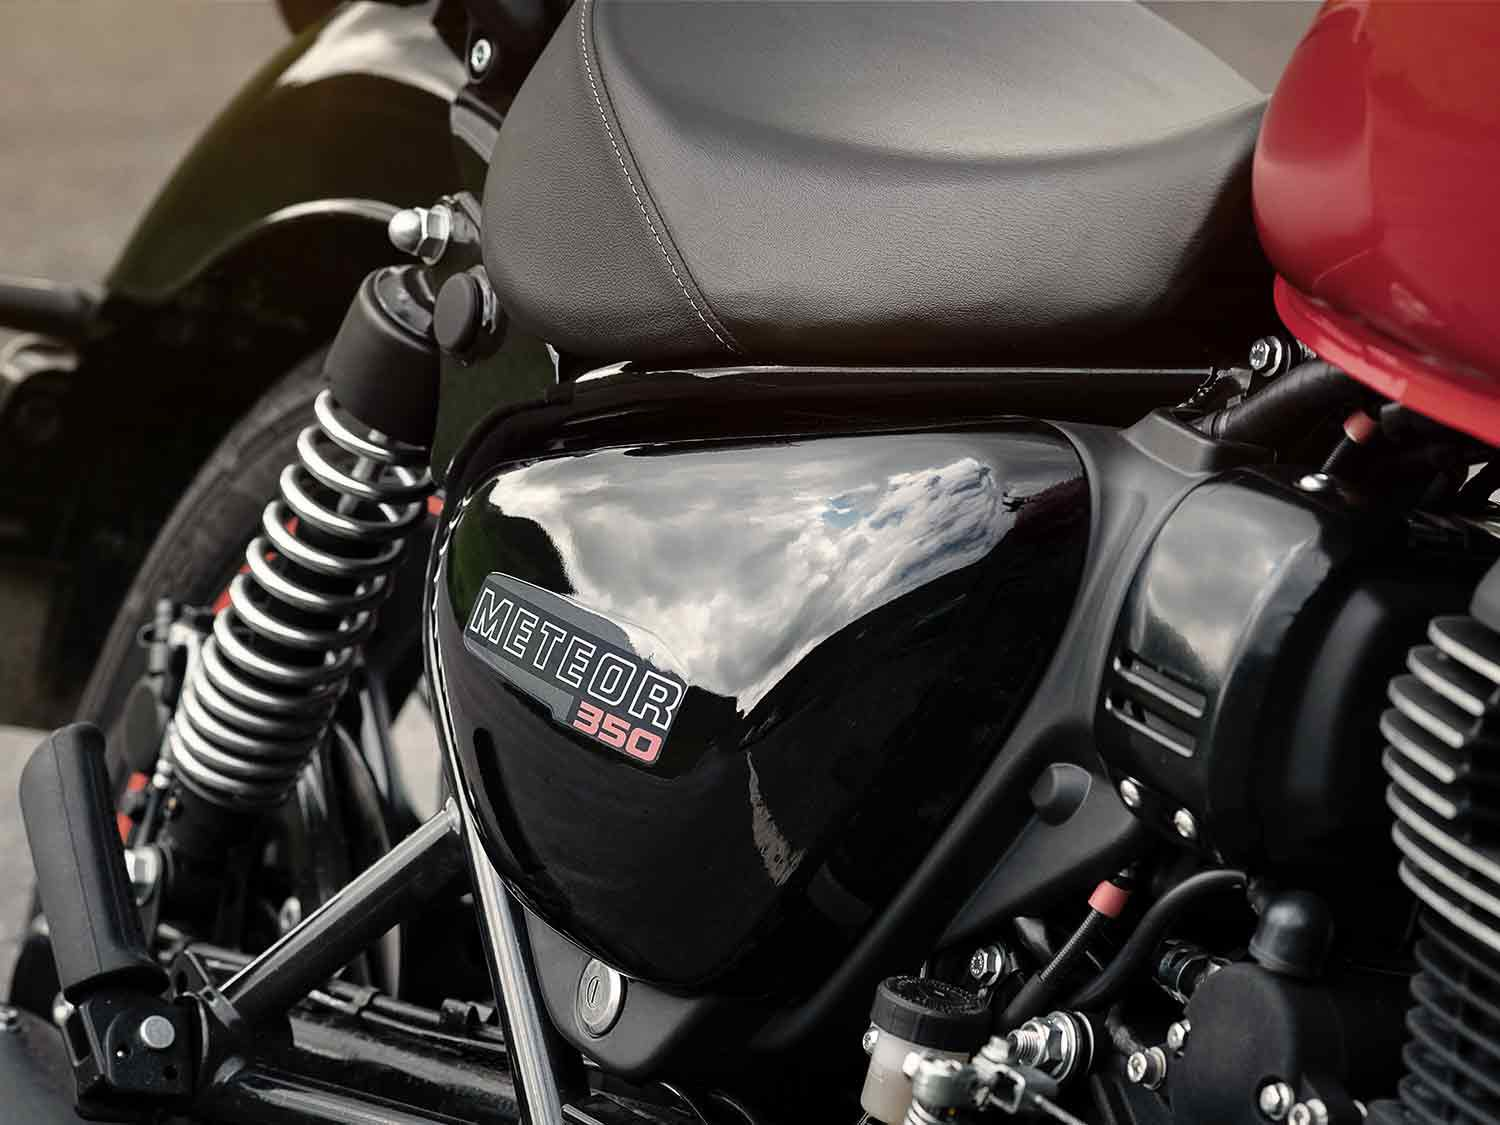 The Meteor marks a step forward for Royal Enfield, thanks to the new Tripper navigation system.